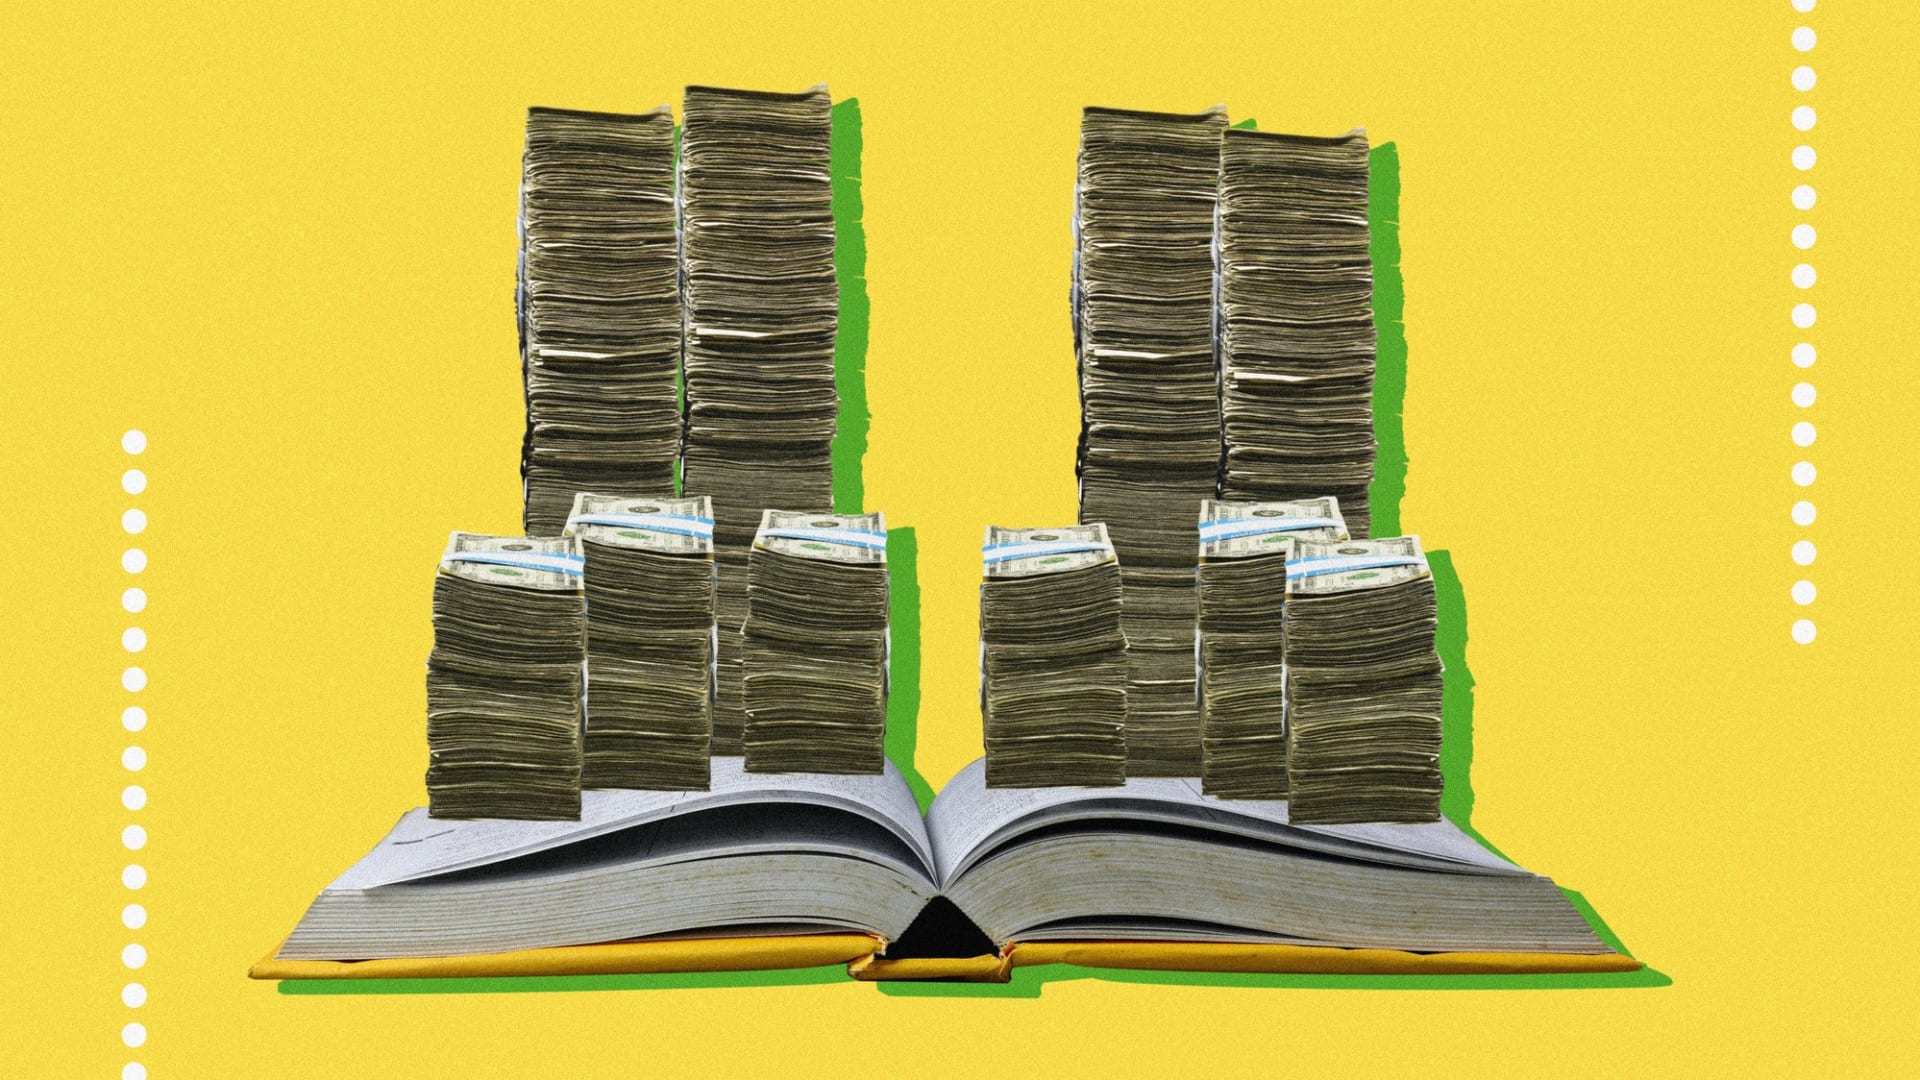 3 Key Methods to Make Big Money Off of Your Latest Book